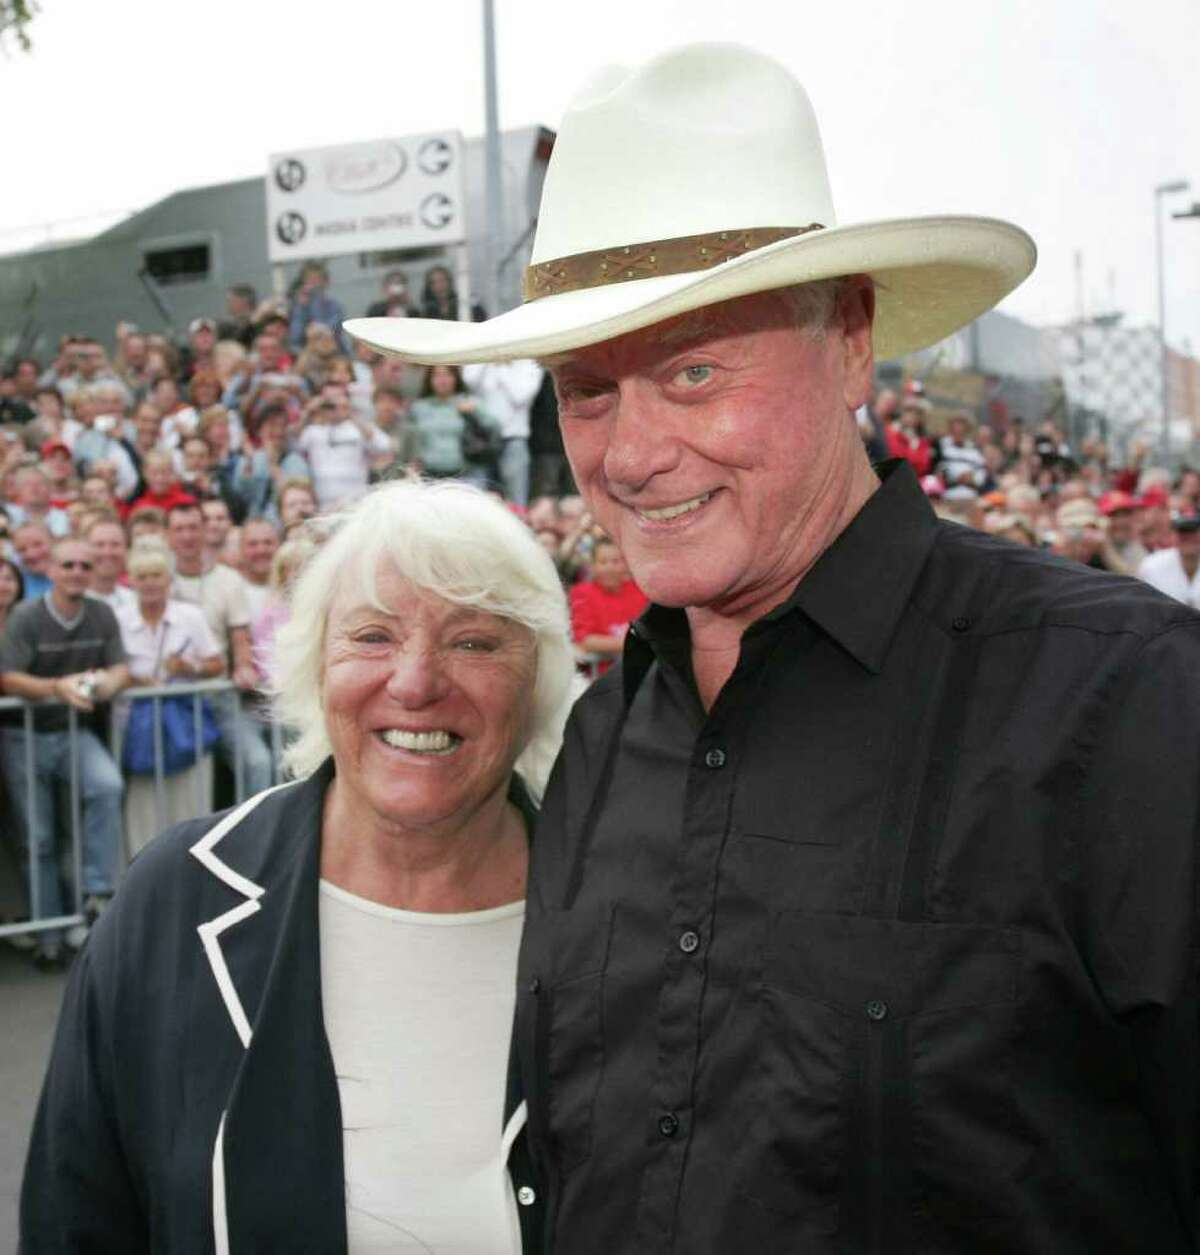 Actor Larry Hagman and his wife Maj attend a Motorsport Charity Gala 21 July 2007 at the Nuerburgring racetrack in Nuerburg, western Germany. AFP PHOTO DDP/KATJA LENZ GERMANY OUT